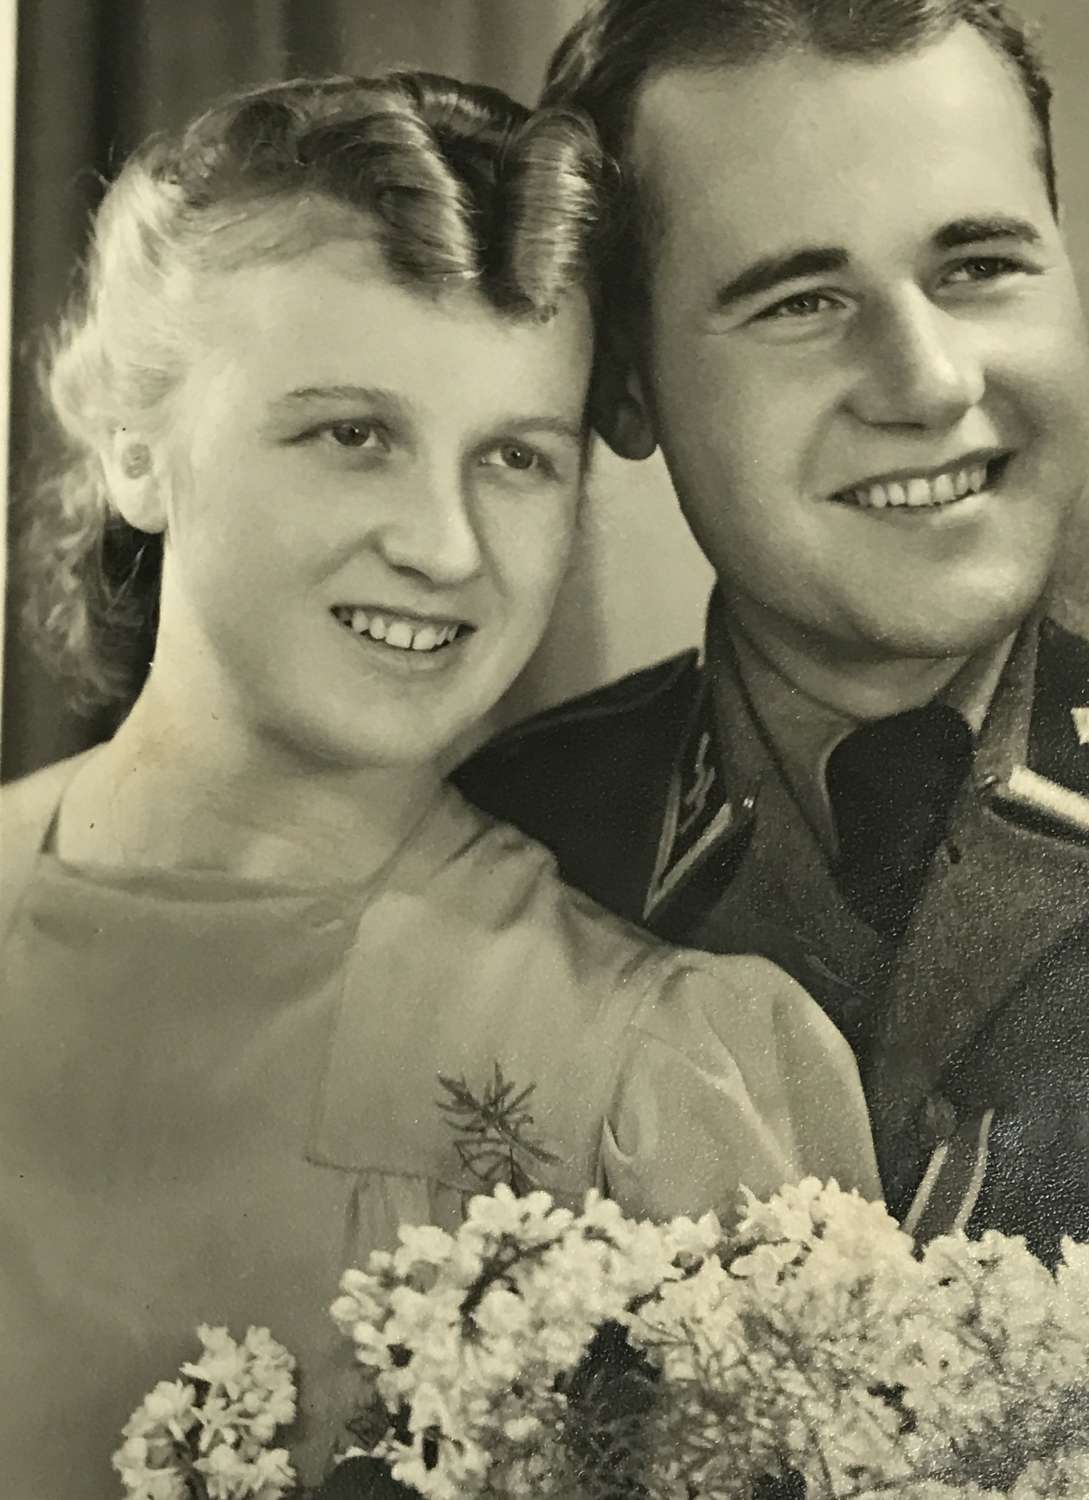 Postcard of SS wedding couple dated 1943